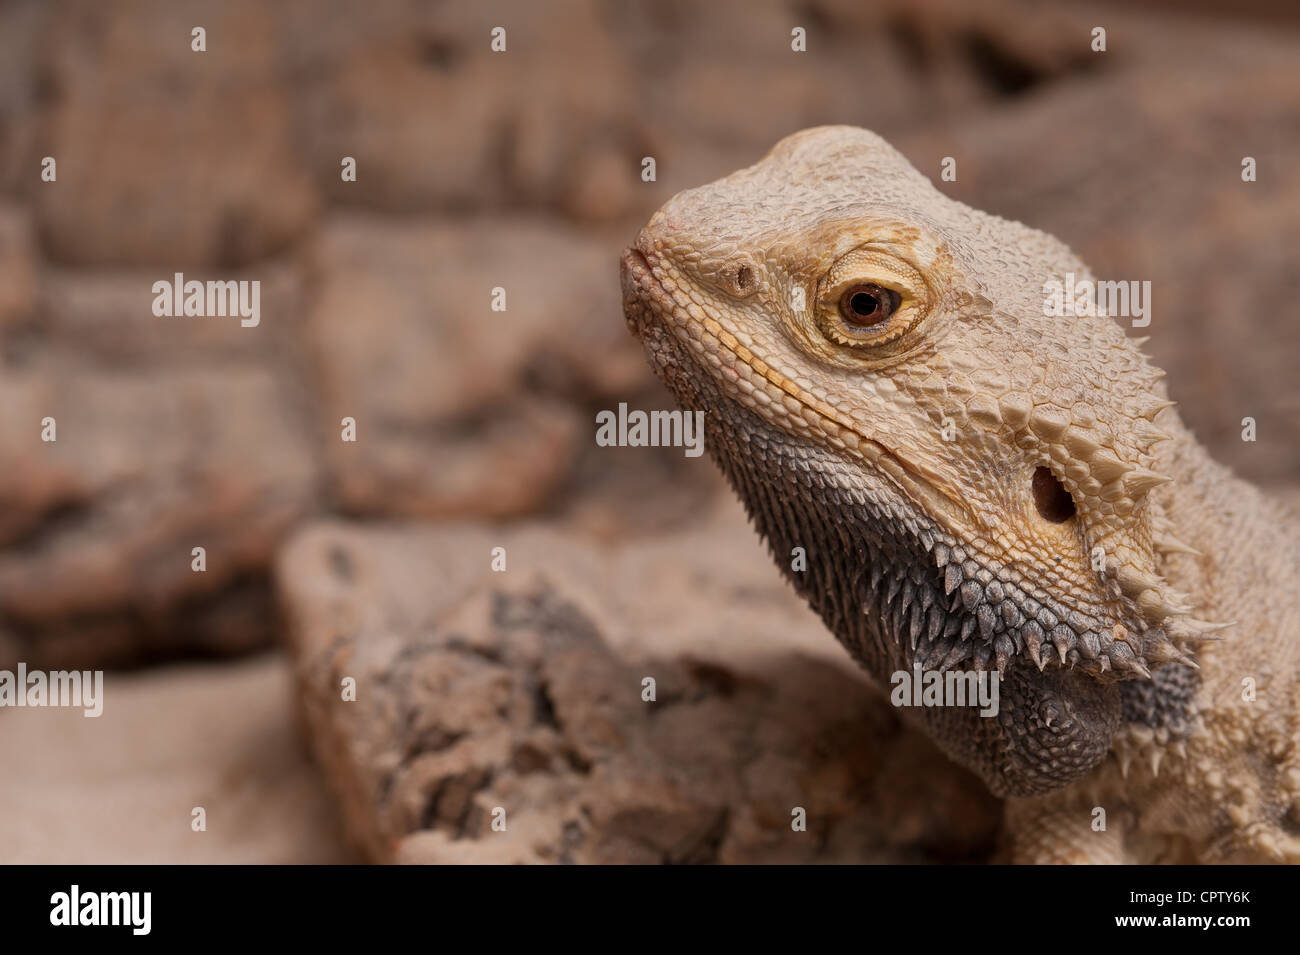 K Dragon Lizard dragon lizard showing face